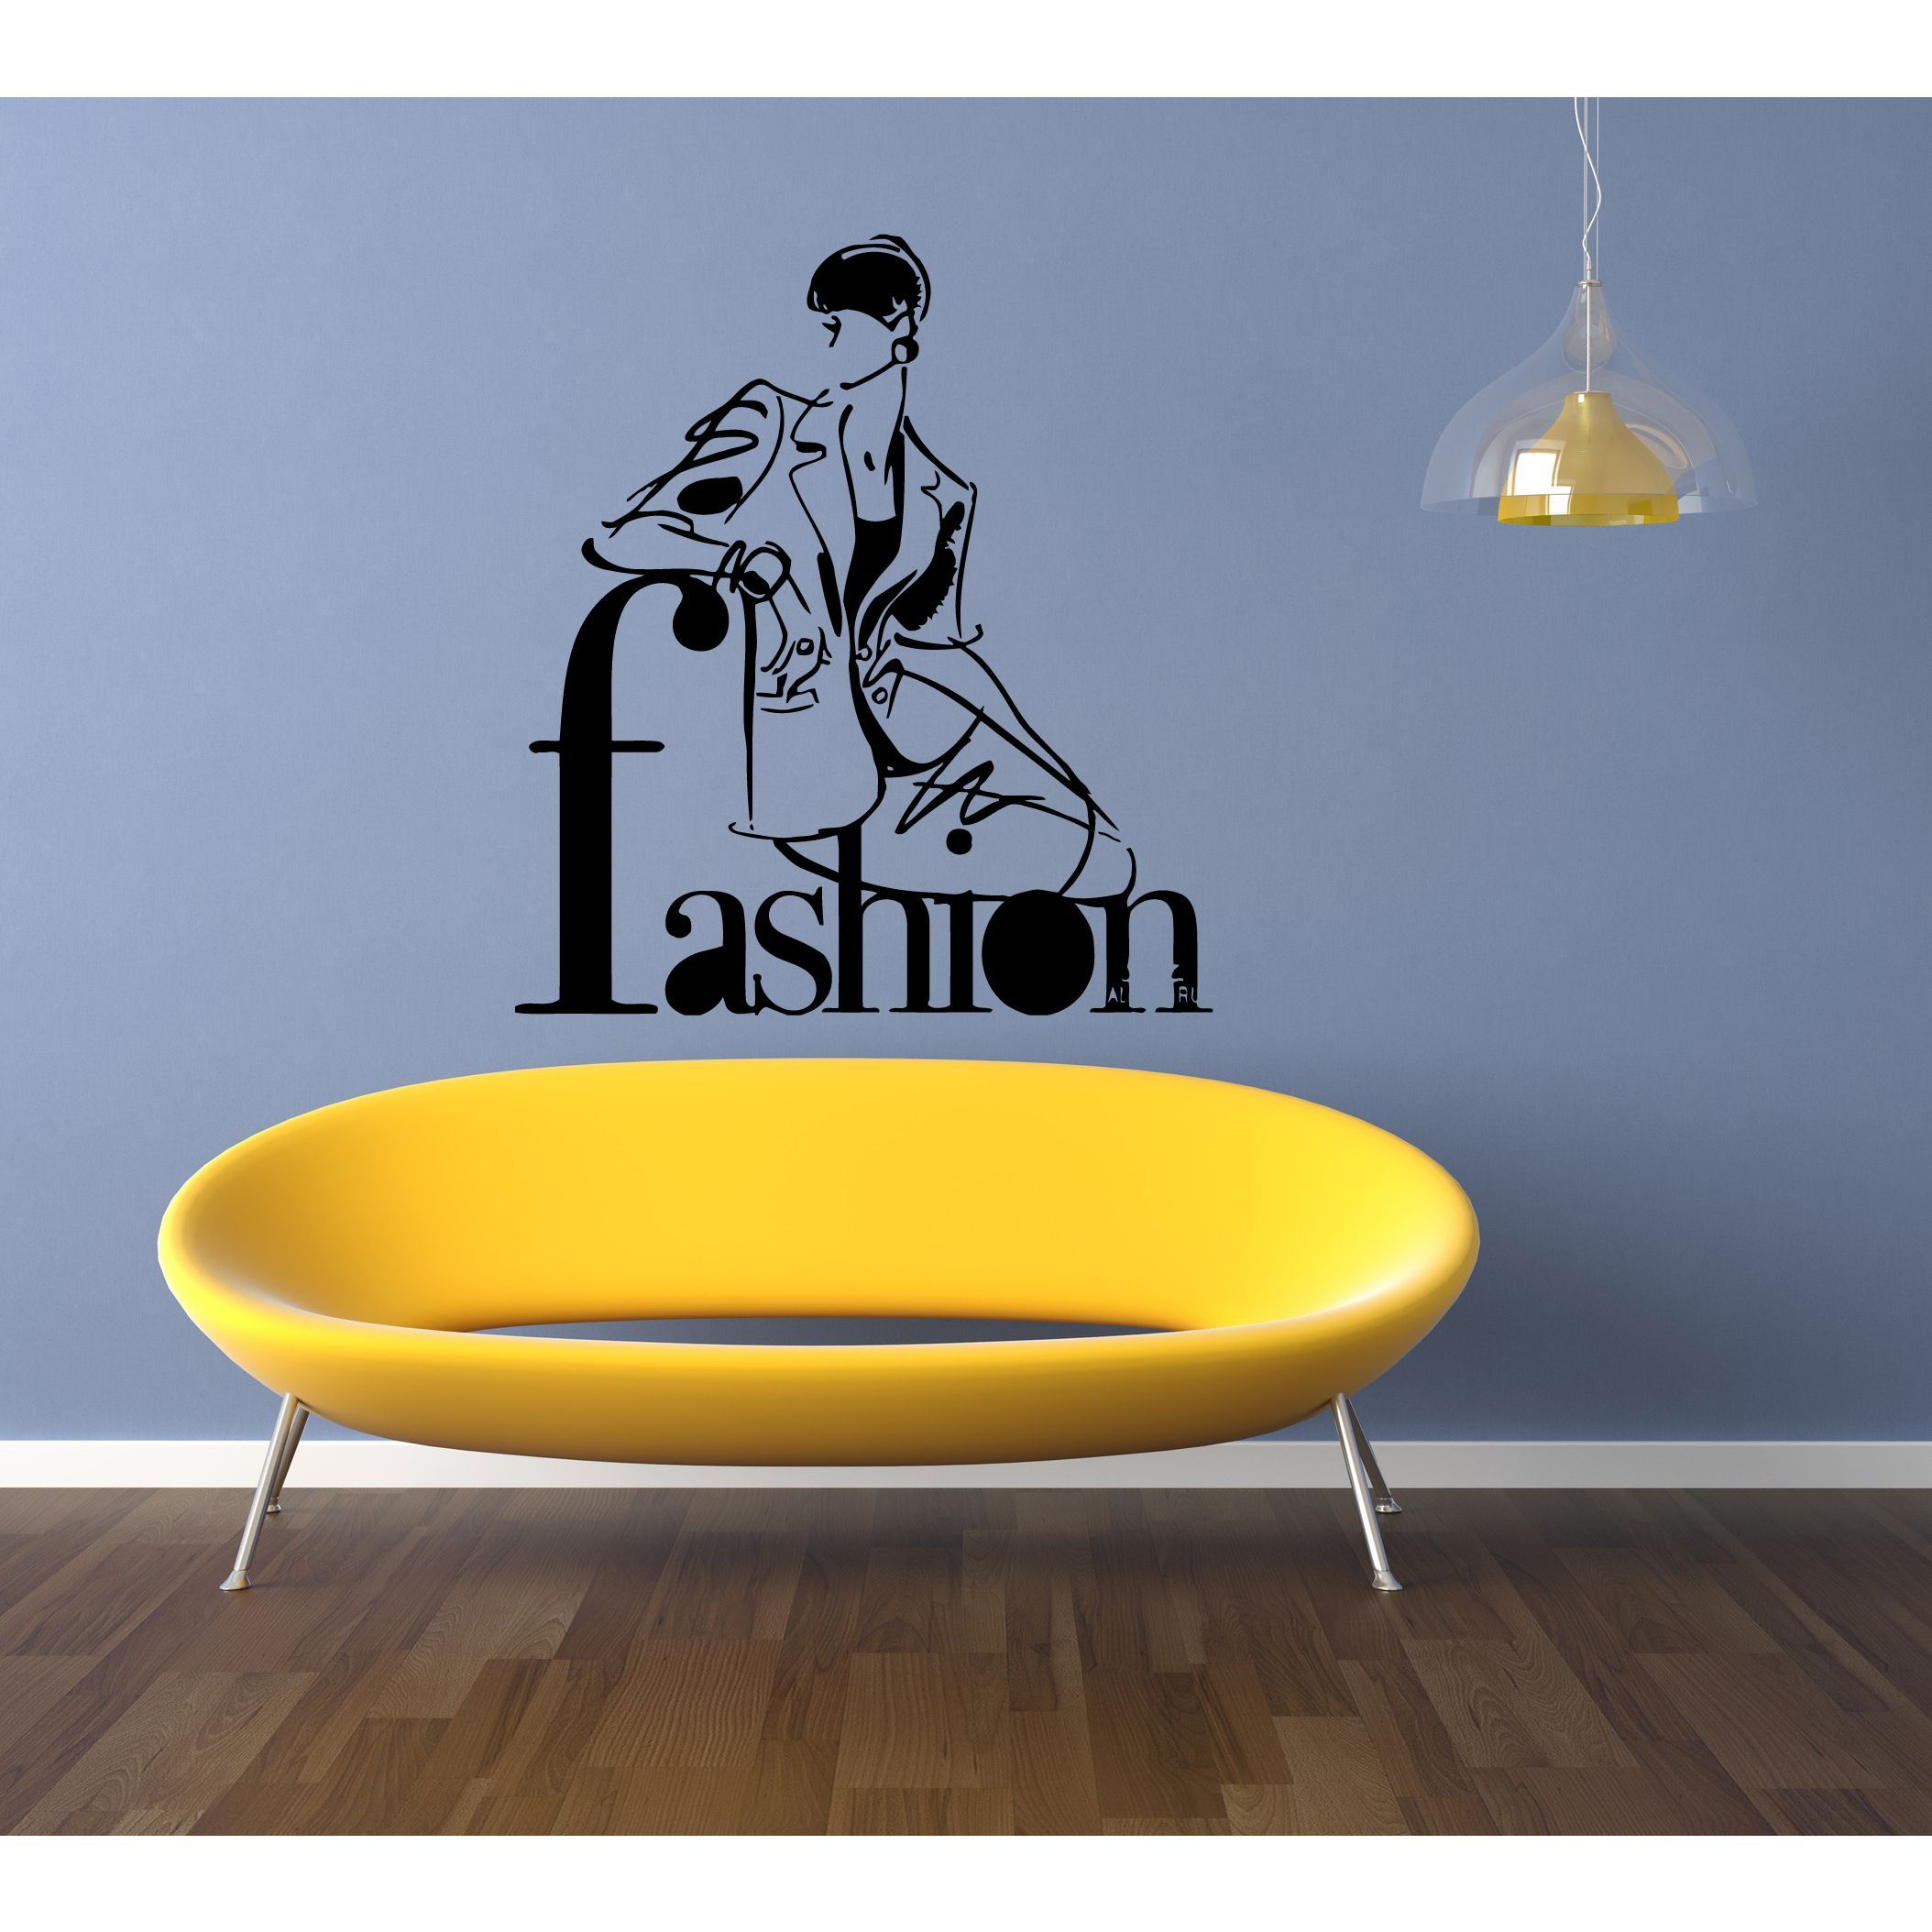 Girl trend Fashion Wall Art Sticker Decal | Products | Pinterest ...